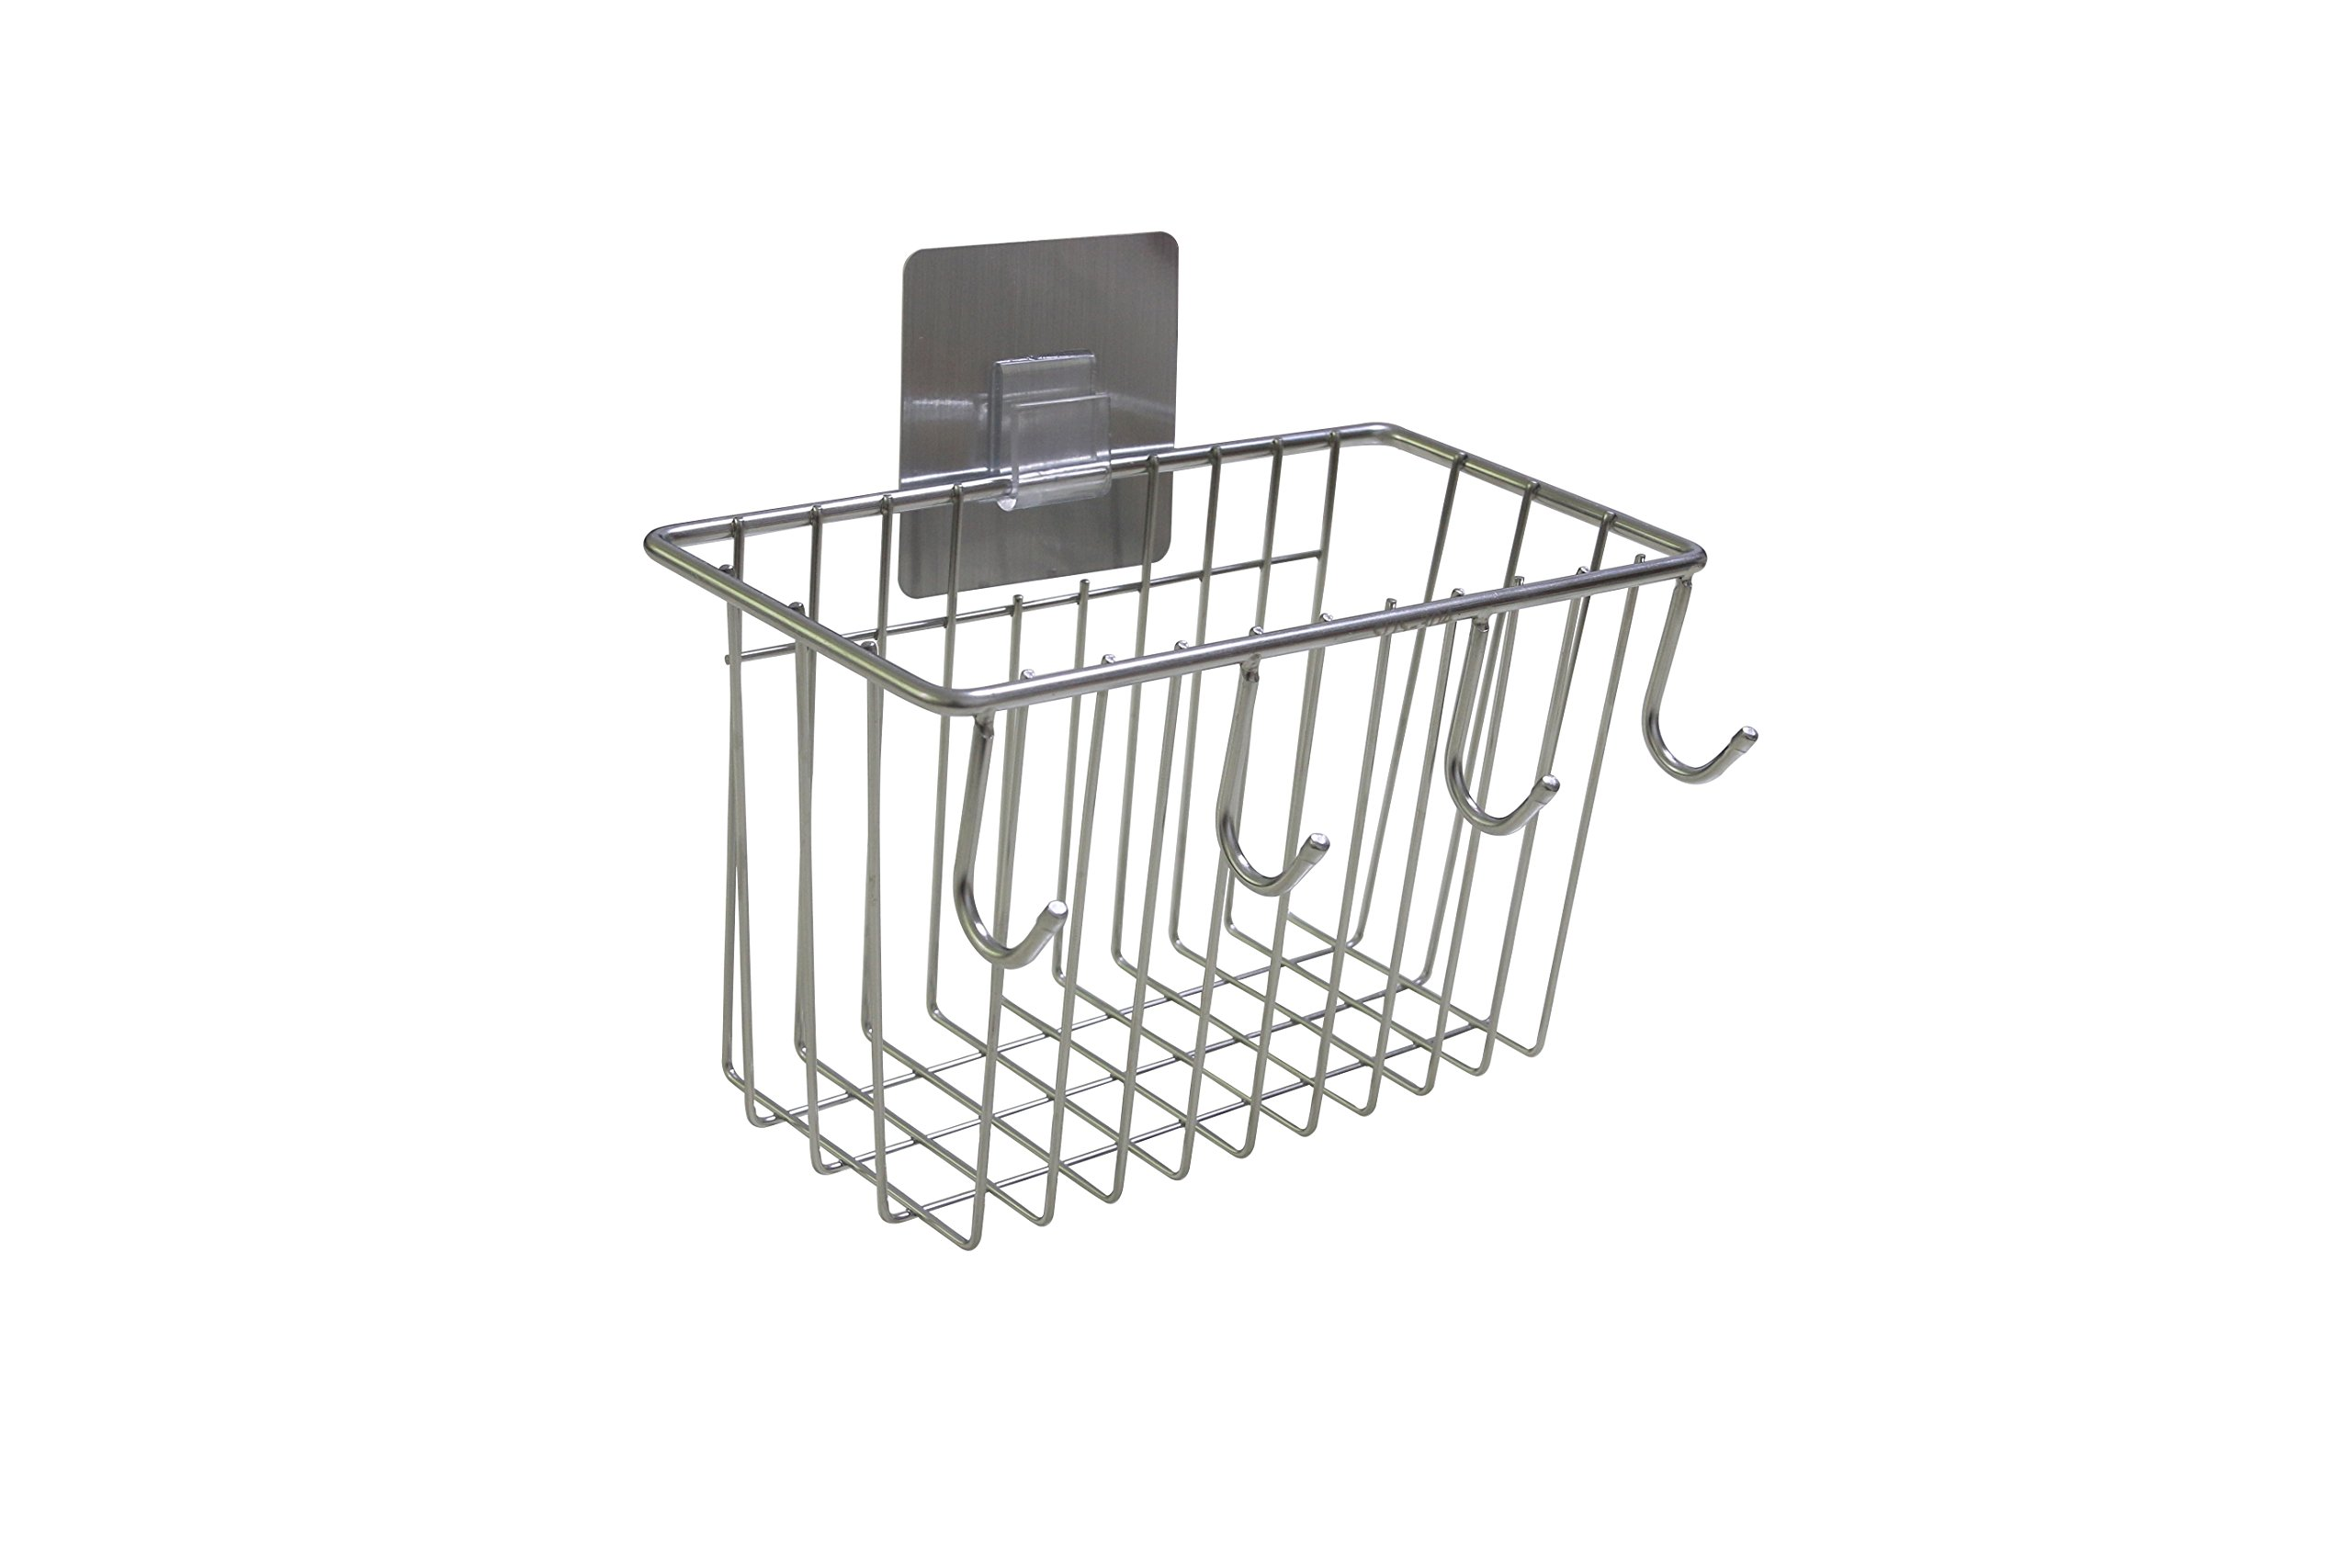 Stainless Steel Kitchen Storage Organizer Basket Rack, Brushed Finish